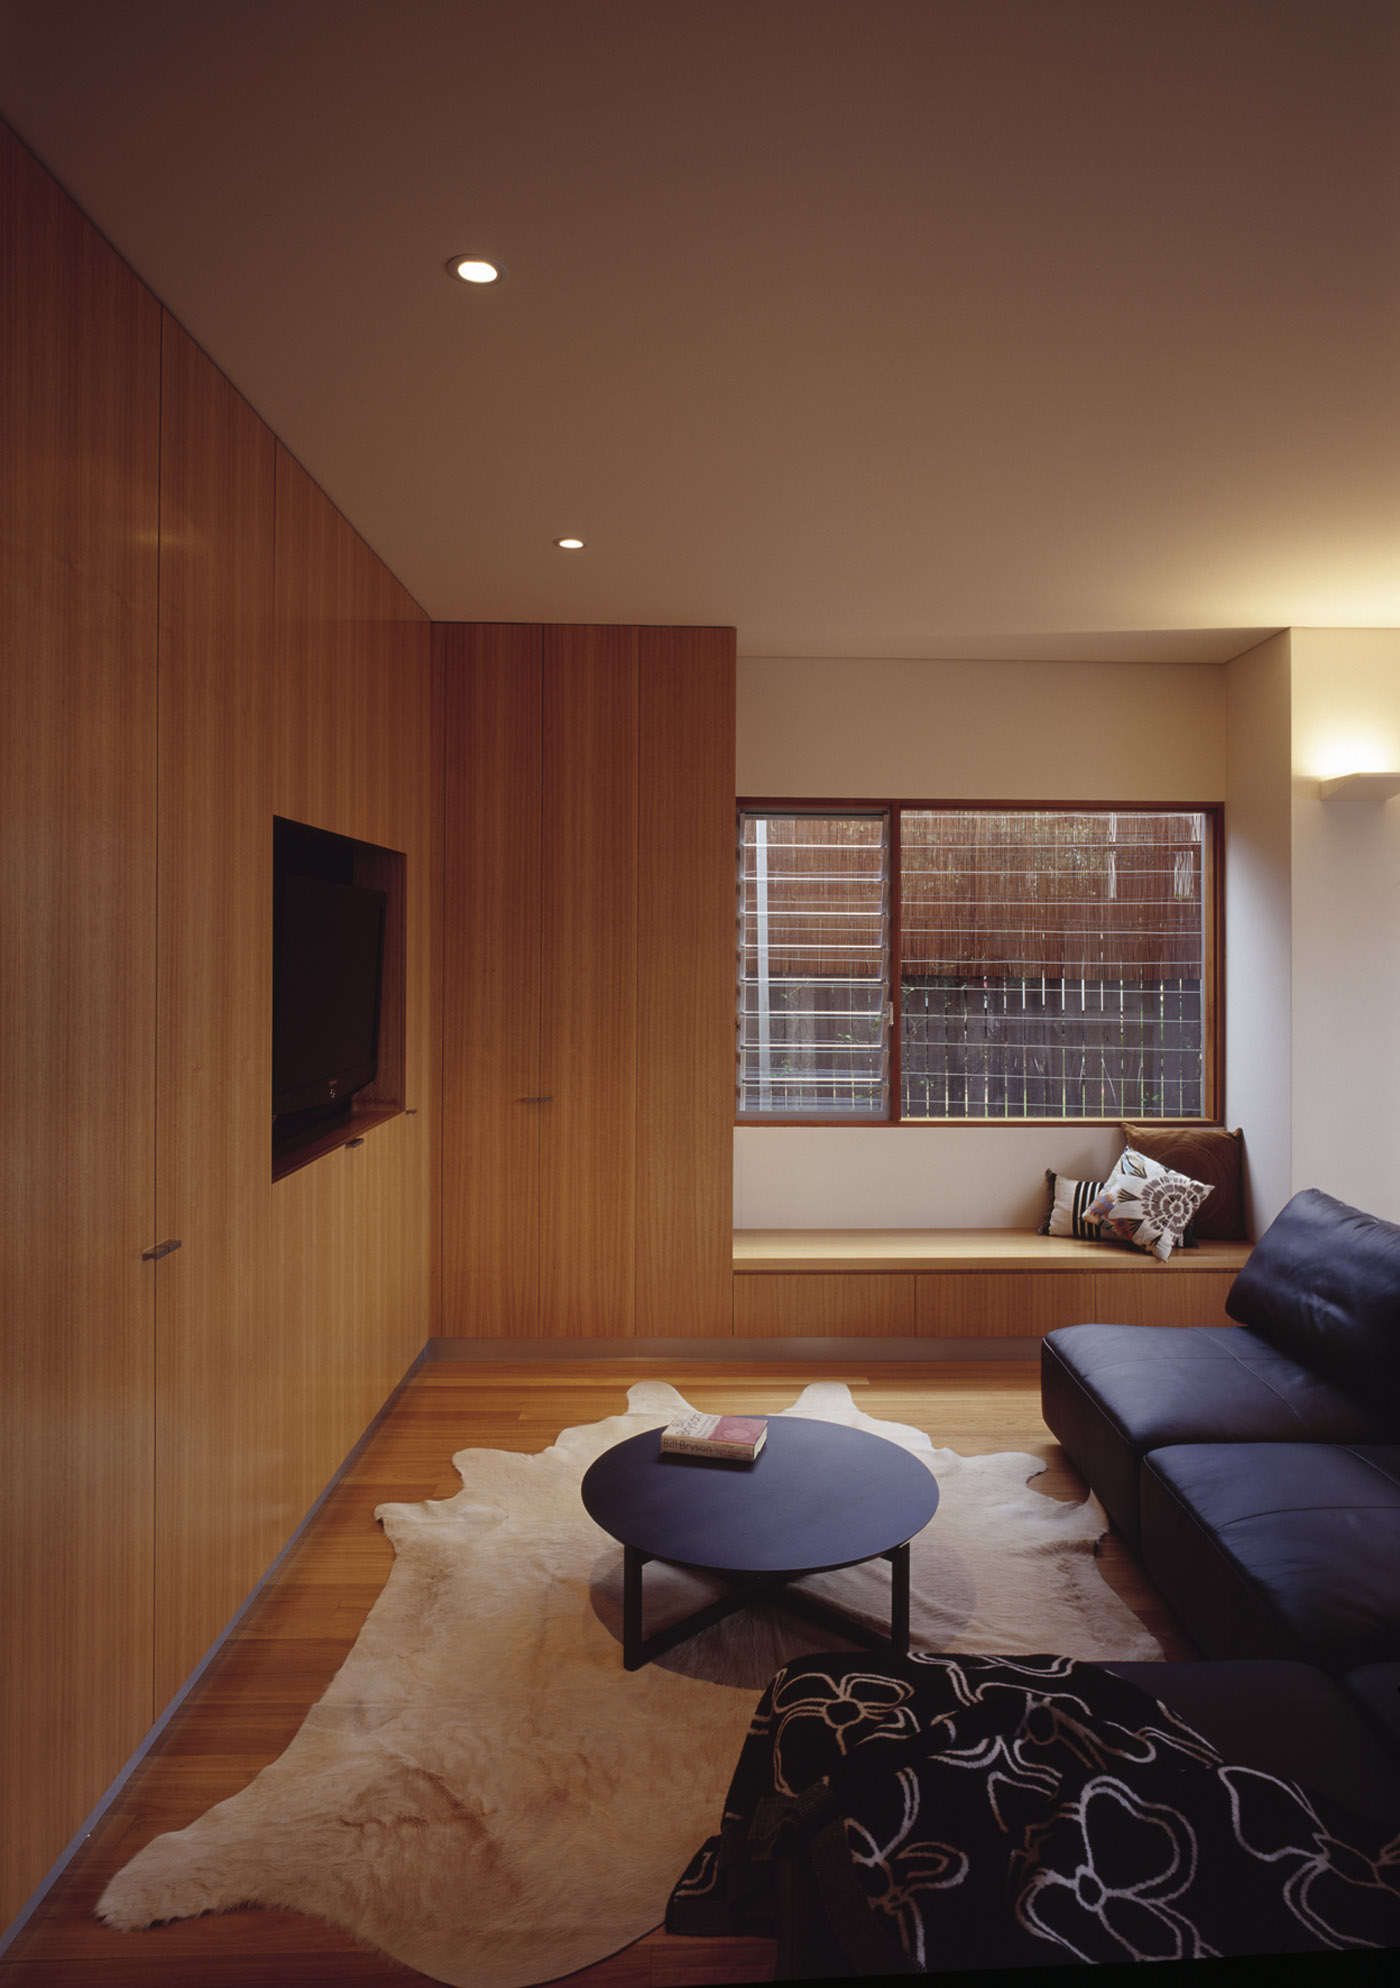 Cooper House by Sydney award winning residential architecture office Sam Crawford Architects. Blackbutt timber joinery and window seat creates ambience to living room.